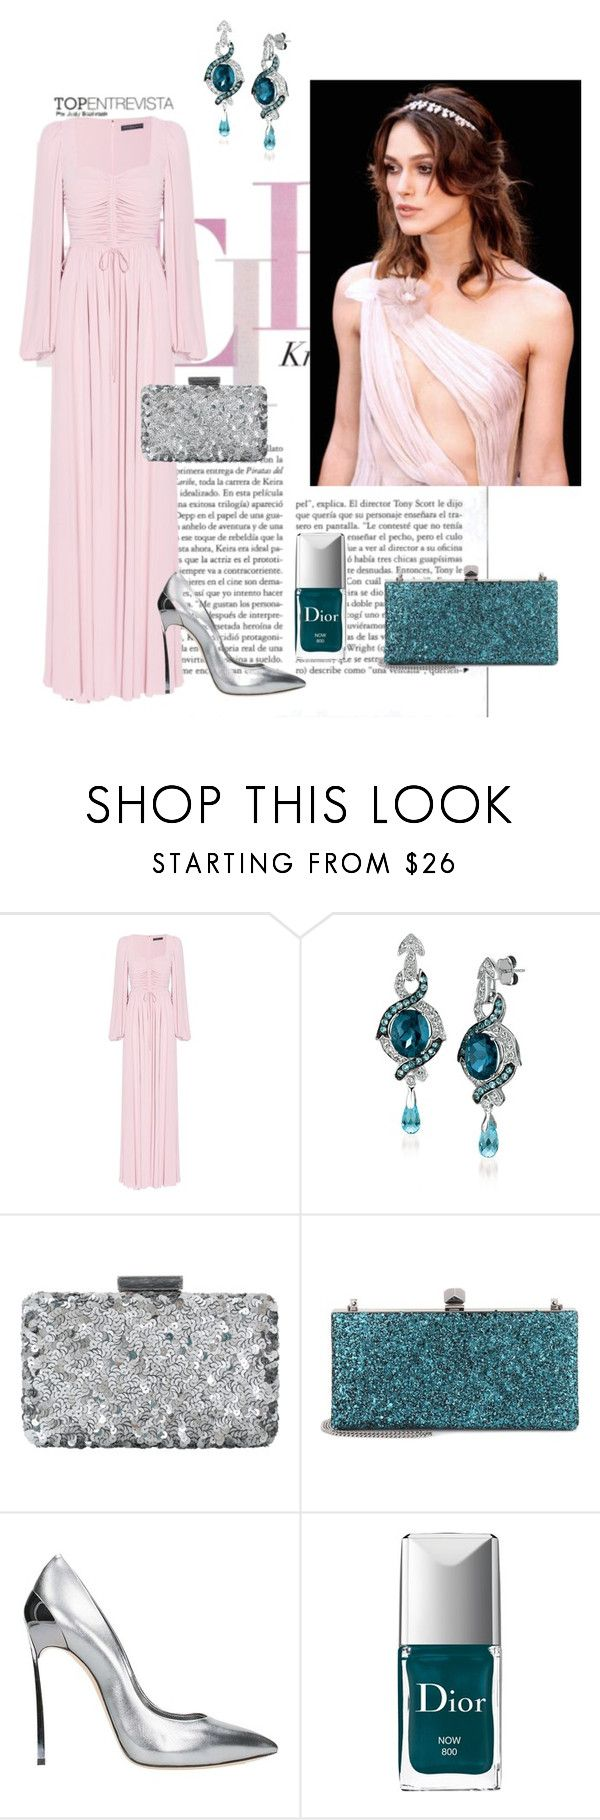 """""""#PolyPresents: Statement Jewelry"""" by ghilby90 ❤ liked on Polyvore featuring Alexander McQueen, LE VIAN, Oscar de la Renta, Jimmy Choo, Casadei, Christian Dior, contestentry and polyPresents"""